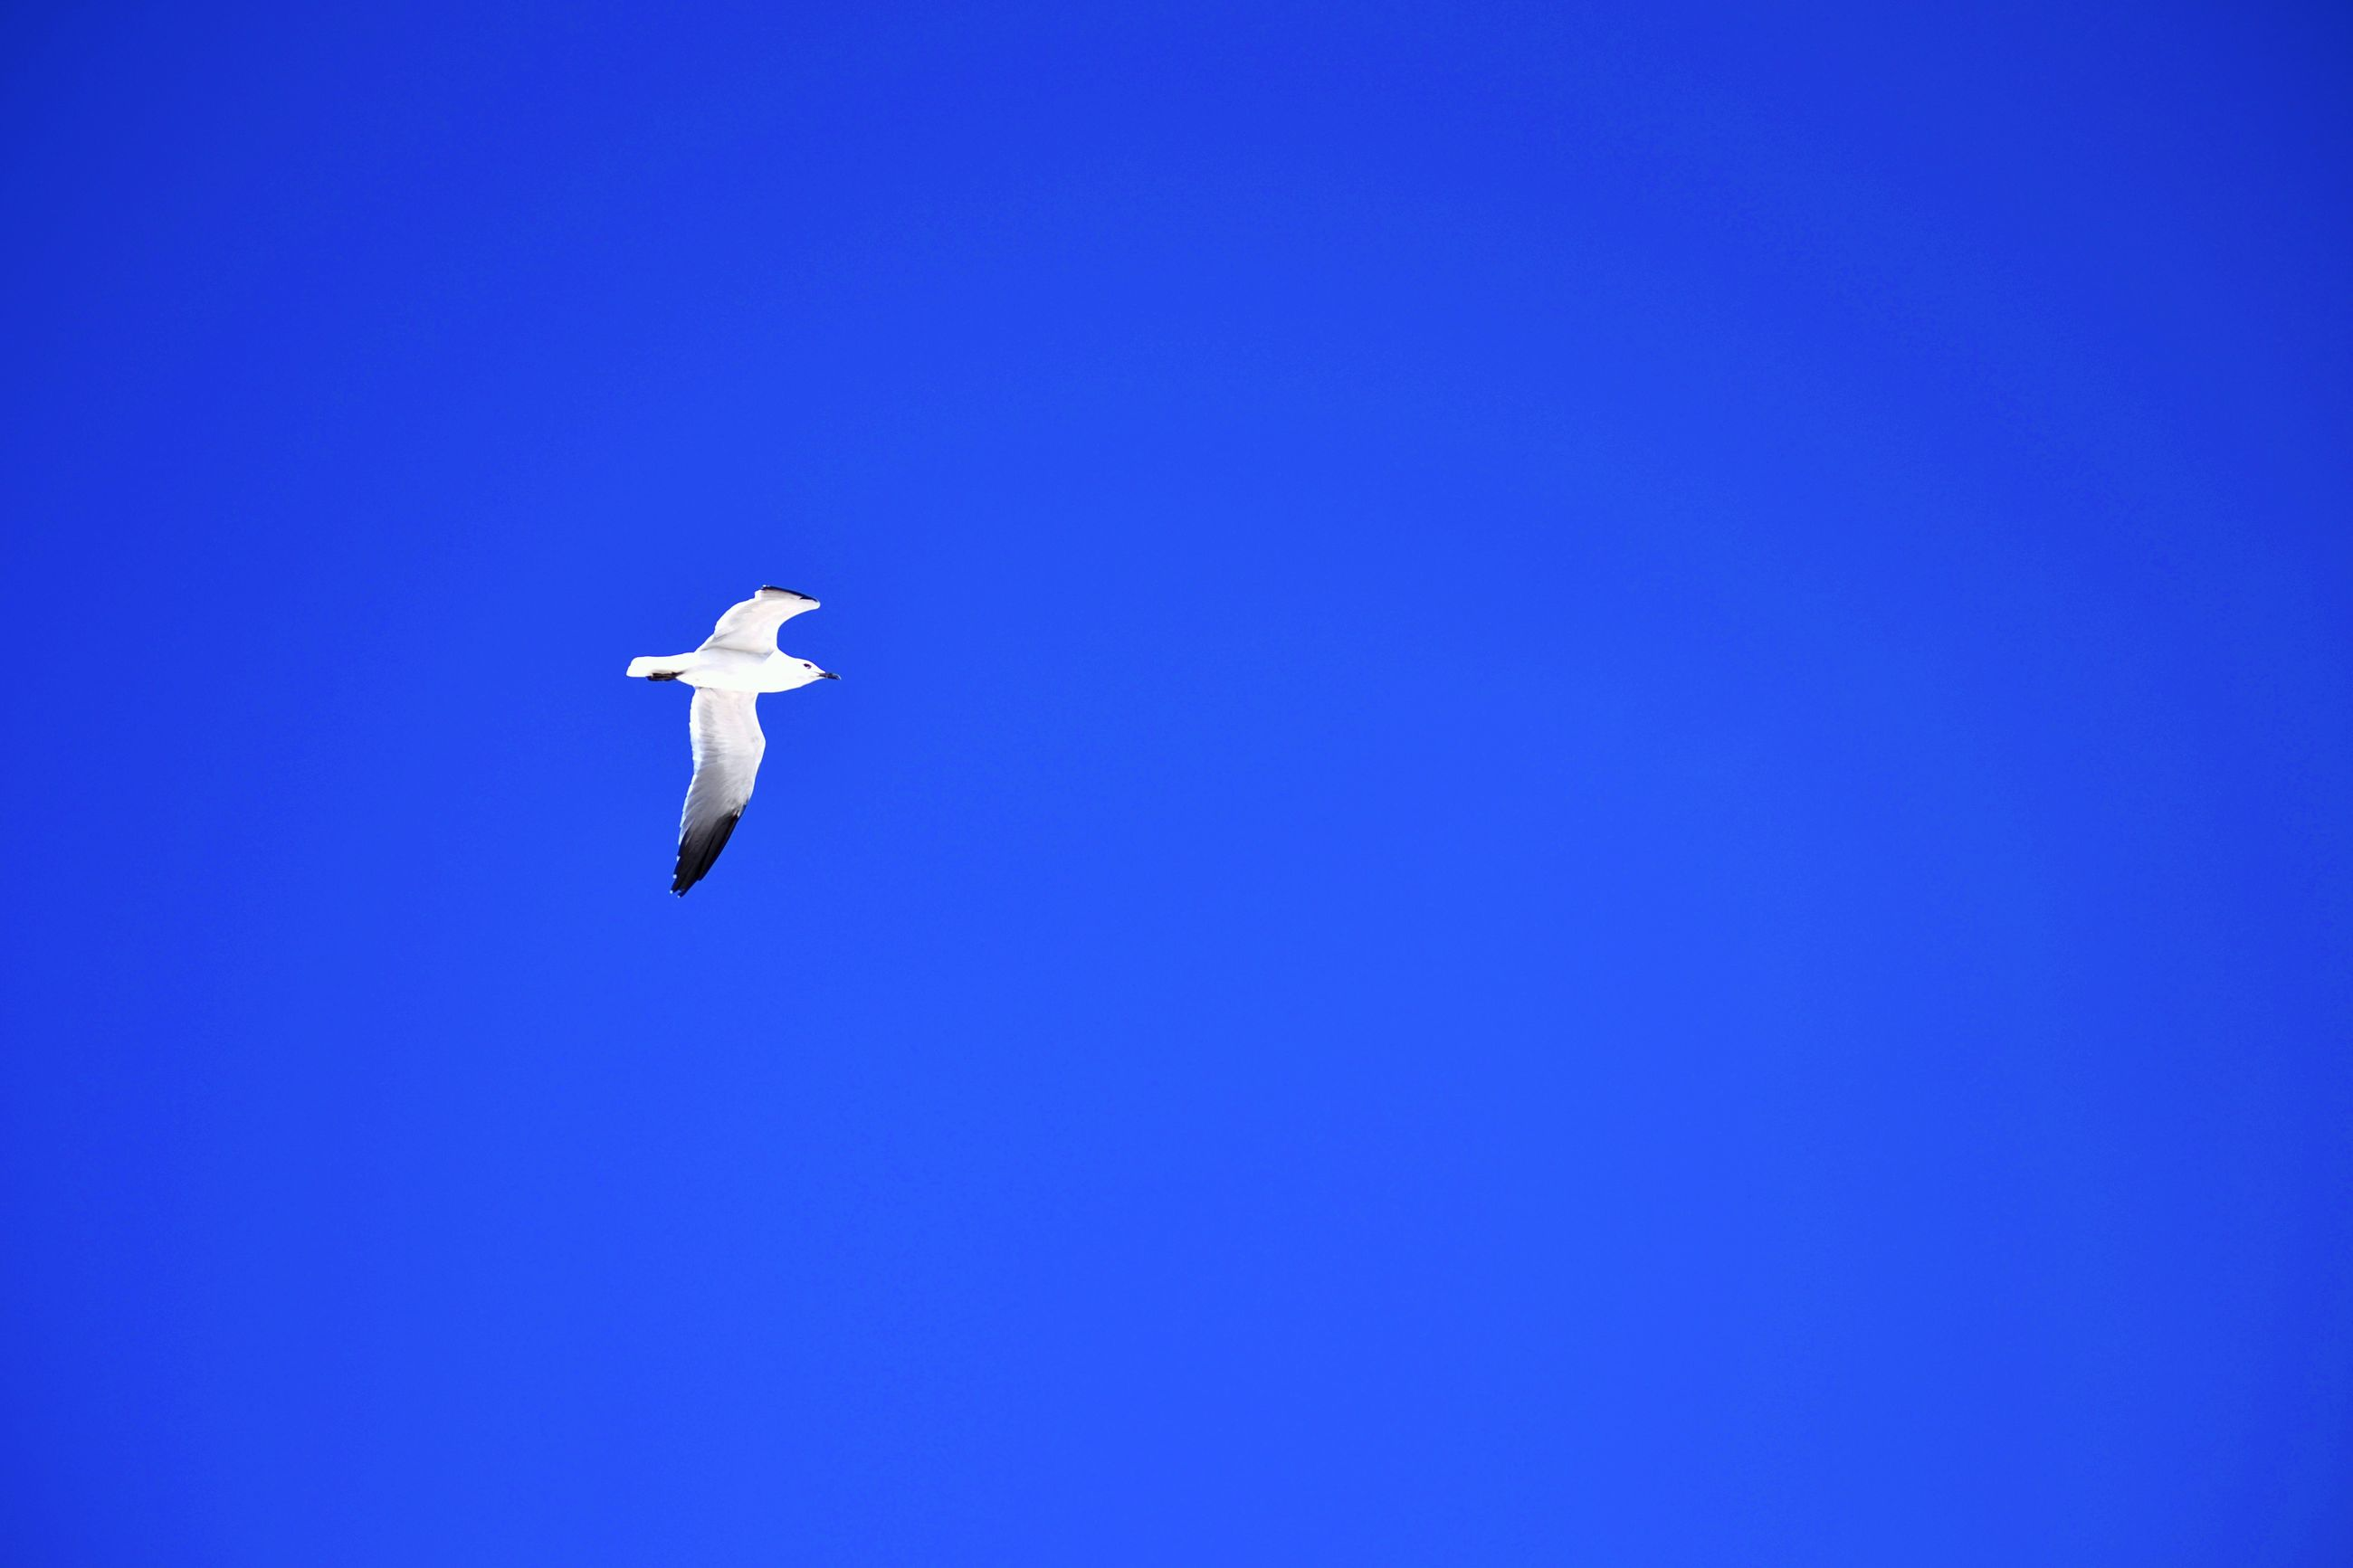 clear sky, blue, flying, copy space, low angle view, bird, animal themes, mid-air, wildlife, animals in the wild, one animal, spread wings, day, no people, outdoors, nature, on the move, transportation, seagull, flight